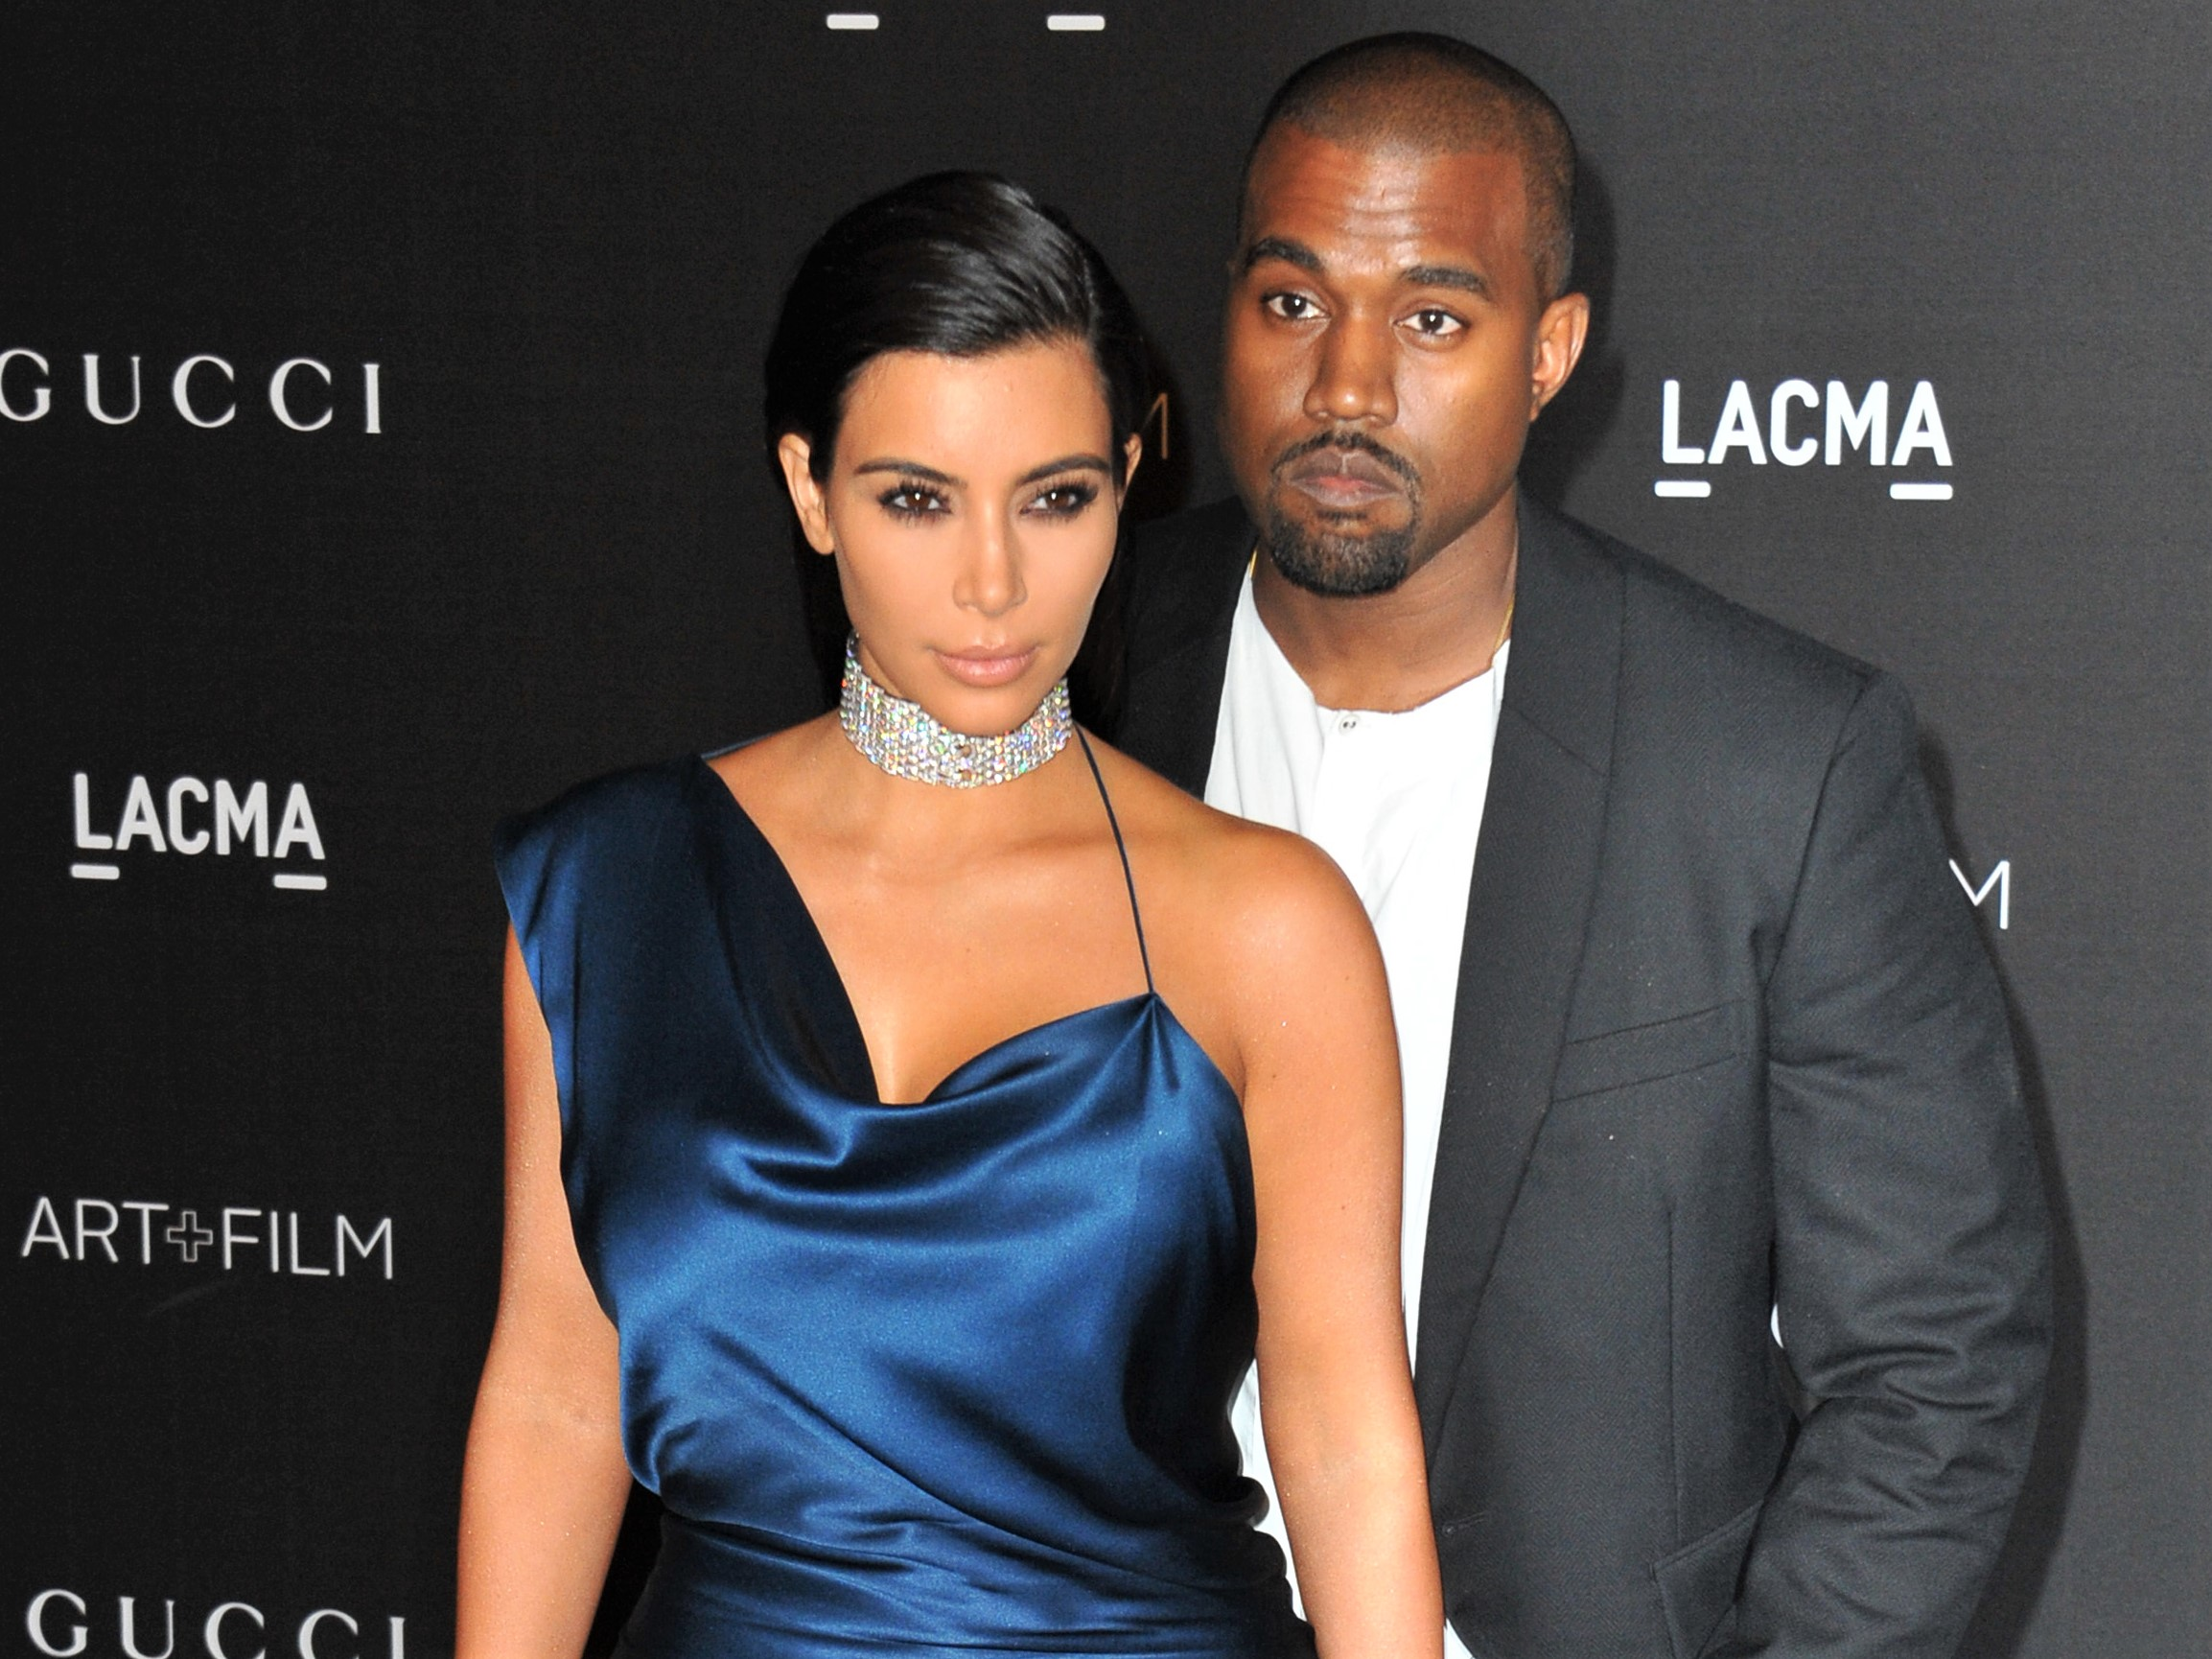 Kim Kardashian West and Kanye West Blue Silk Dress